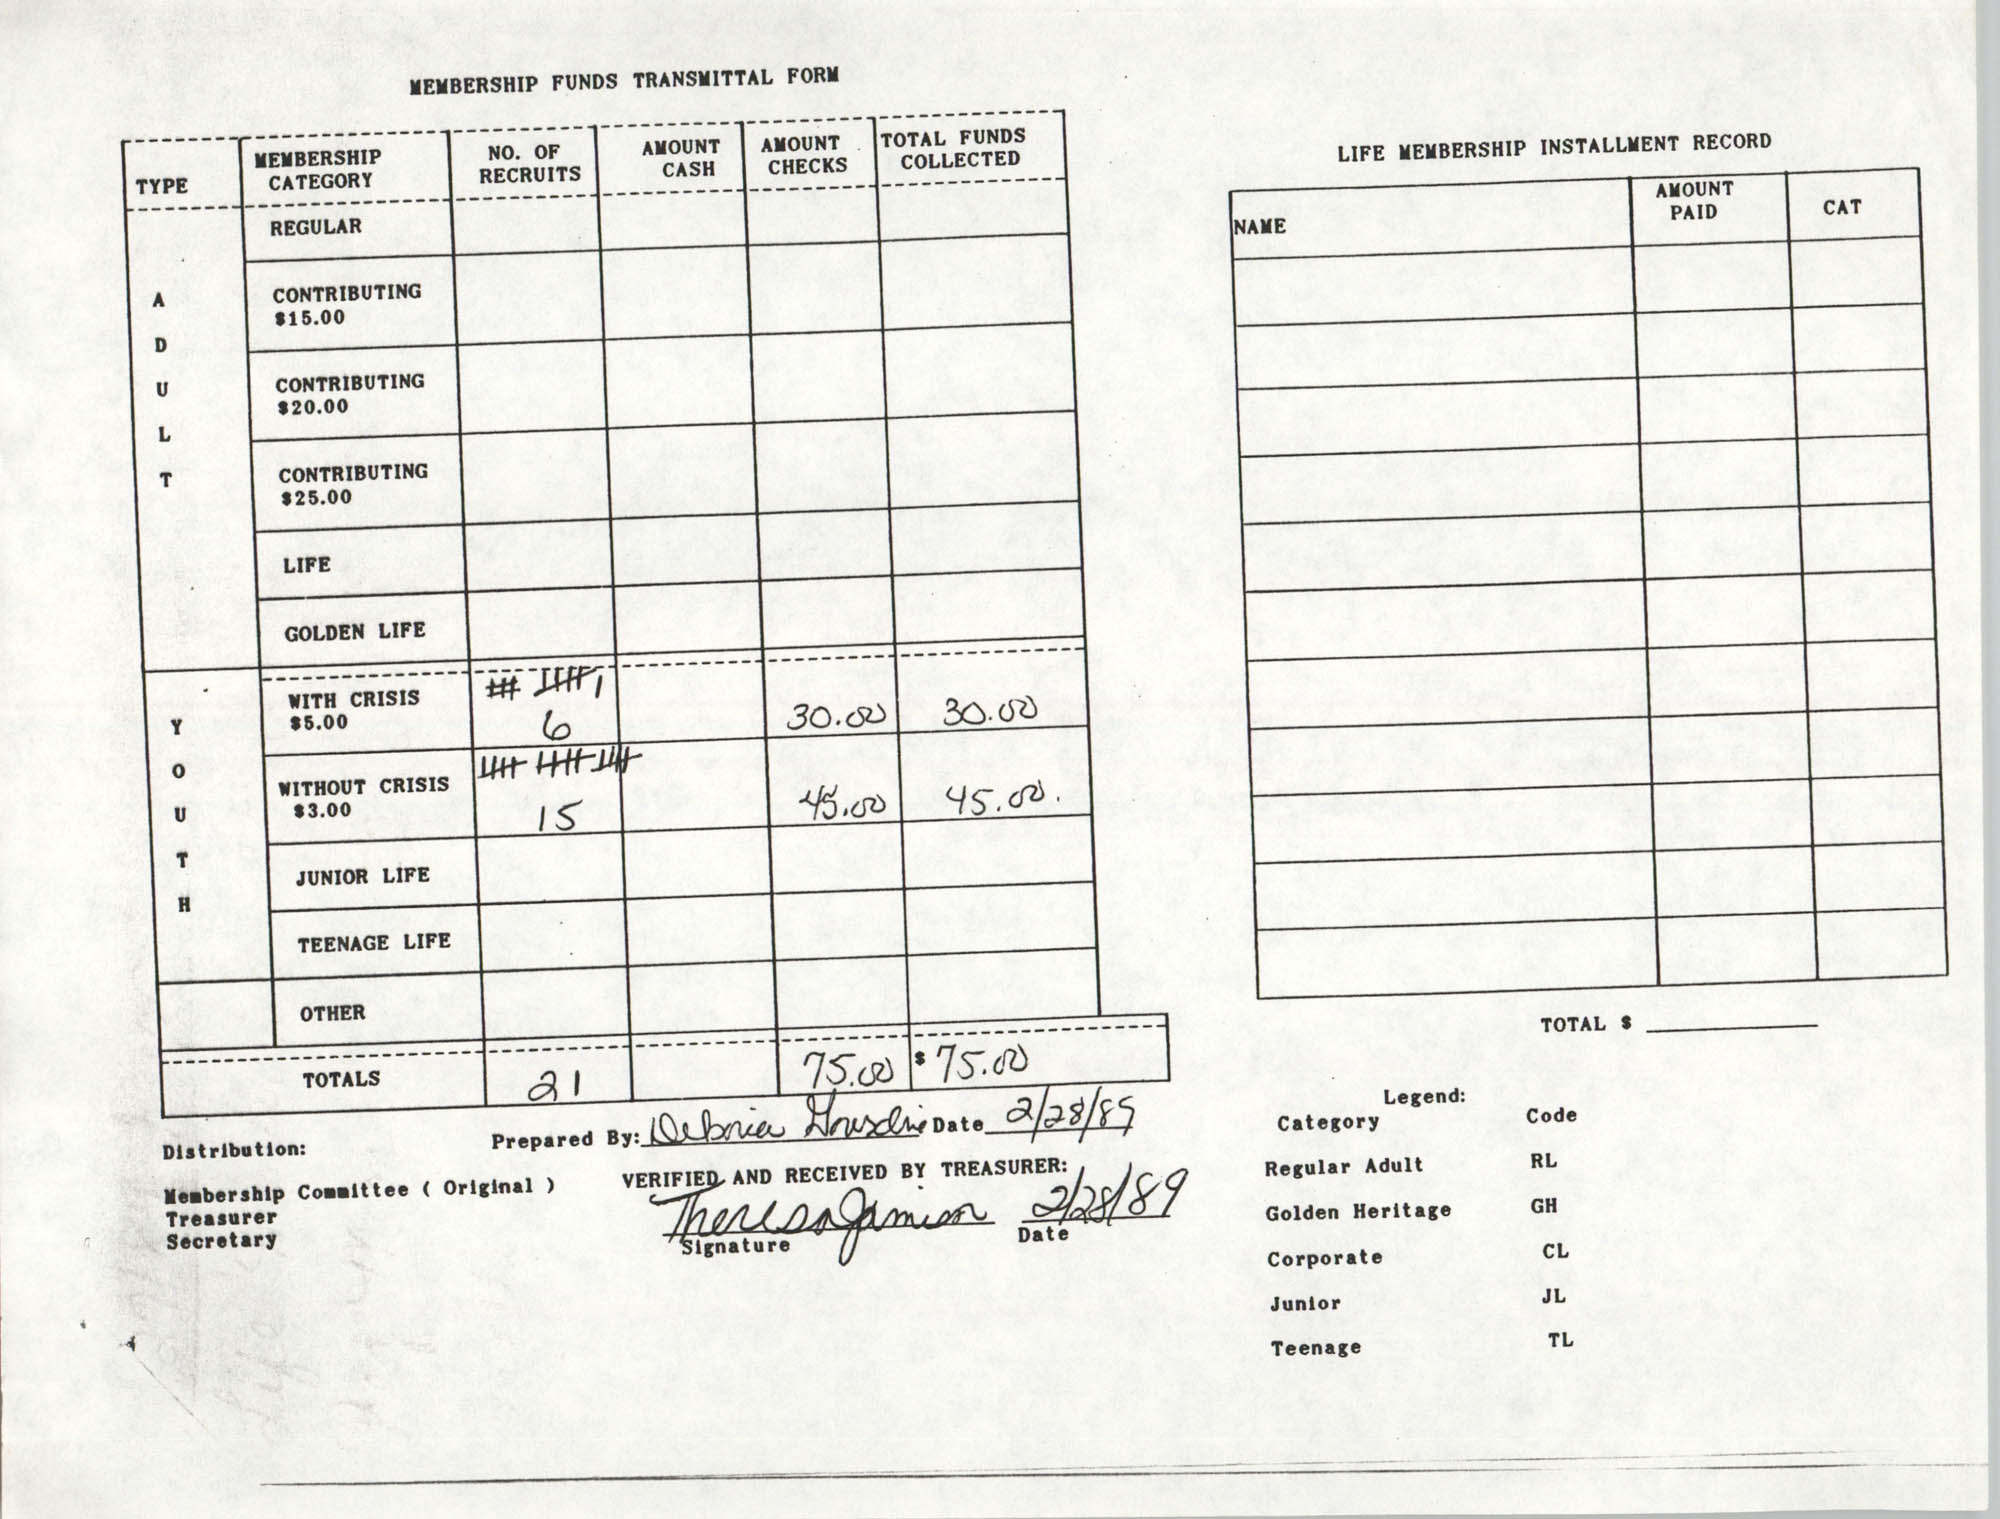 Charleston Branch of the NAACP Funds Transmittal Forms, February 1989, Page 6